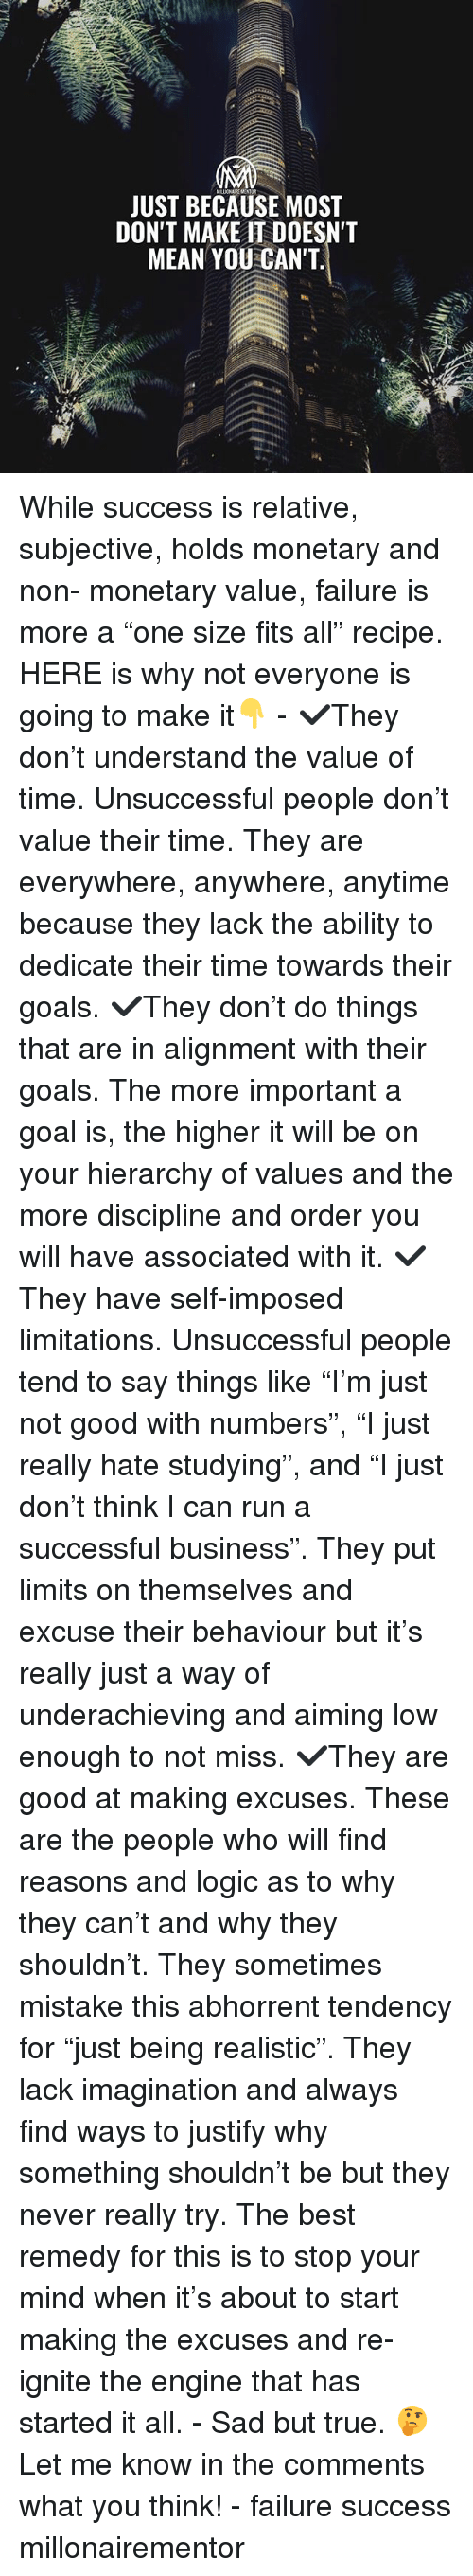 "Goals, Logic, and Memes: JUST BECAUSE MOST  DON'T MAKE T DOESN'T  MEAN YOU CAN'T While success is relative, subjective, holds monetary and non- monetary value, failure is more a ""one size fits all"" recipe. HERE is why not everyone is going to make it👇 - ✔️They don't understand the value of time. Unsuccessful people don't value their time. They are everywhere, anywhere, anytime because they lack the ability to dedicate their time towards their goals. ✔️They don't do things that are in alignment with their goals. The more important a goal is, the higher it will be on your hierarchy of values and the more discipline and order you will have associated with it. ✔️They have self-imposed limitations. Unsuccessful people tend to say things like ""I'm just not good with numbers"", ""I just really hate studying"", and ""I just don't think I can run a successful business"". They put limits on themselves and excuse their behaviour but it's really just a way of underachieving and aiming low enough to not miss. ✔️They are good at making excuses. These are the people who will find reasons and logic as to why they can't and why they shouldn't. They sometimes mistake this abhorrent tendency for ""just being realistic"". They lack imagination and always find ways to justify why something shouldn't be but they never really try. The best remedy for this is to stop your mind when it's about to start making the excuses and re-ignite the engine that has started it all. - Sad but true. 🤔 Let me know in the comments what you think! - failure success millonairementor"